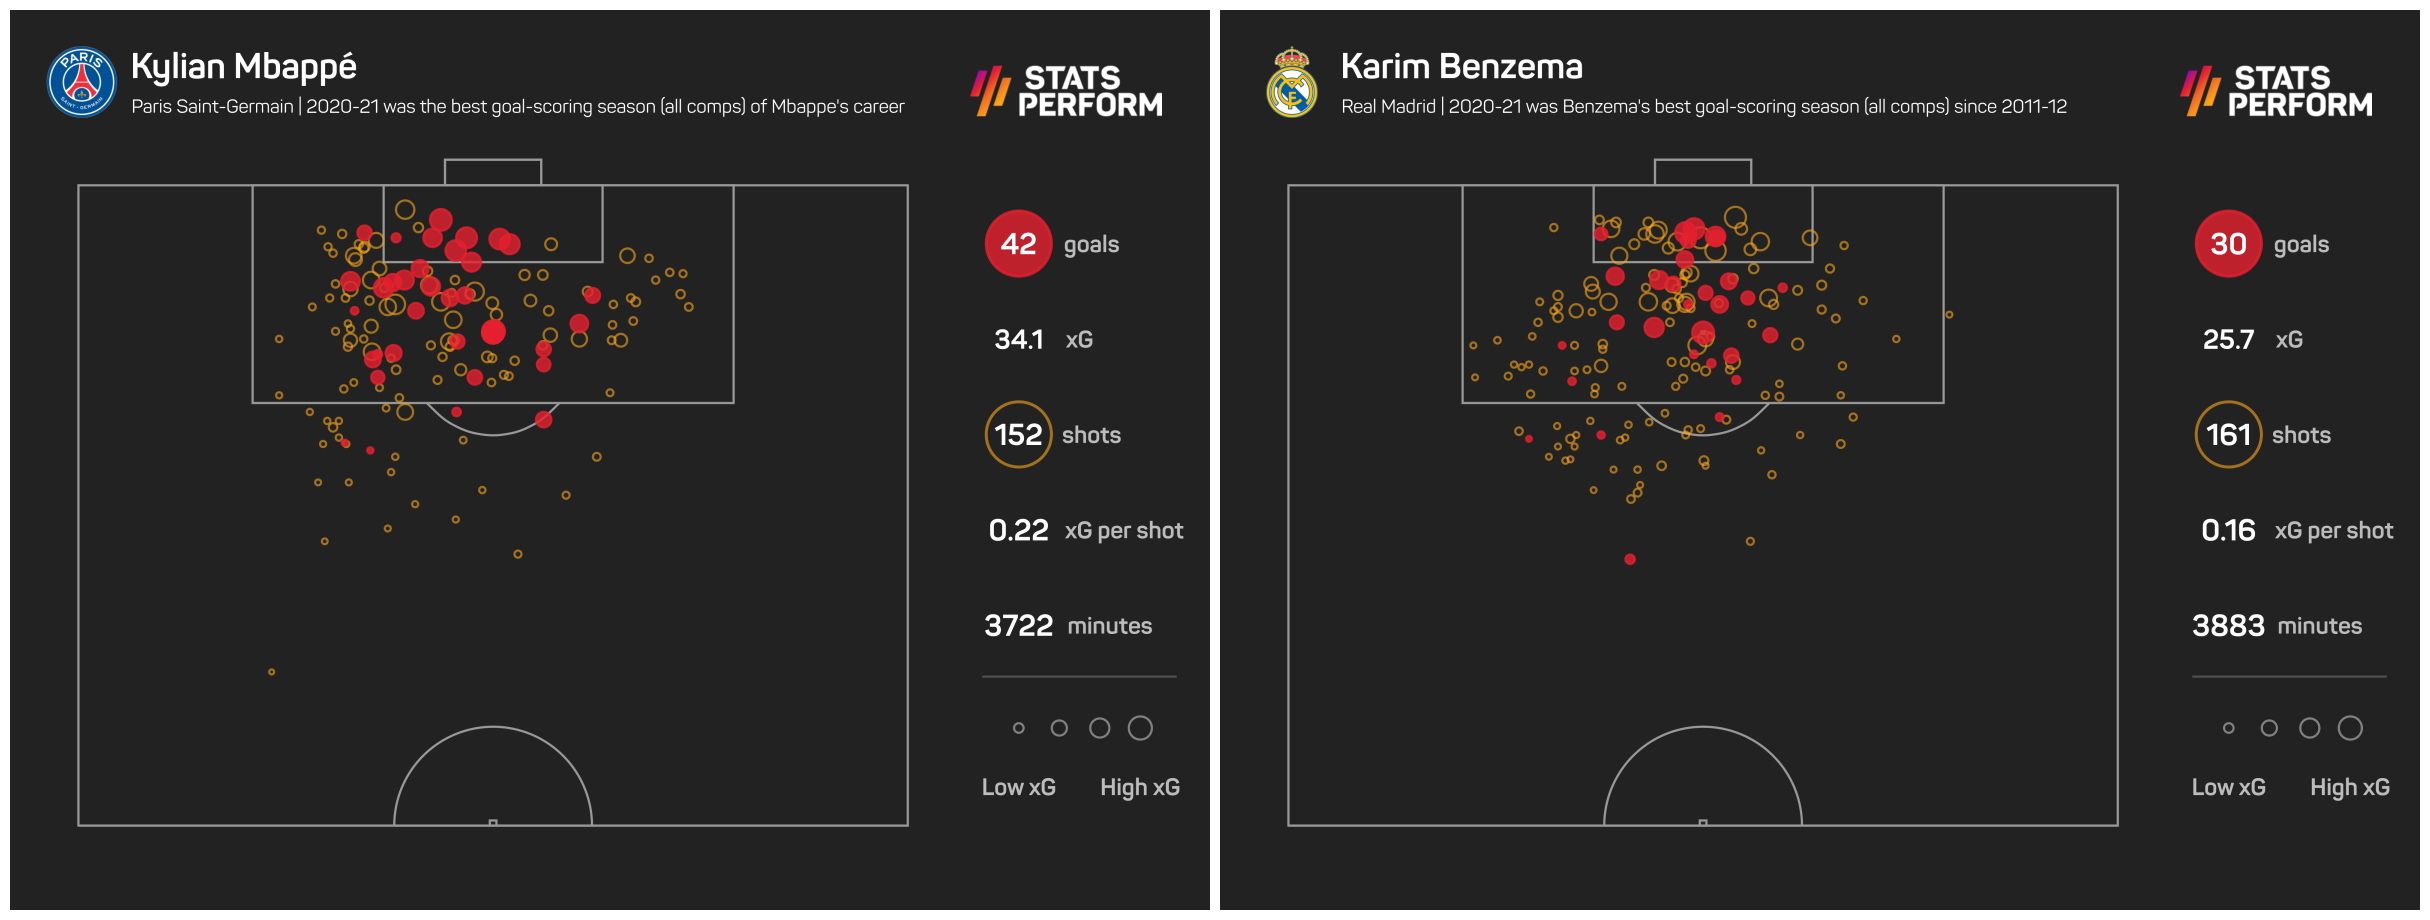 Kylian Mbappe and Karim Benzema could be a lethal combination